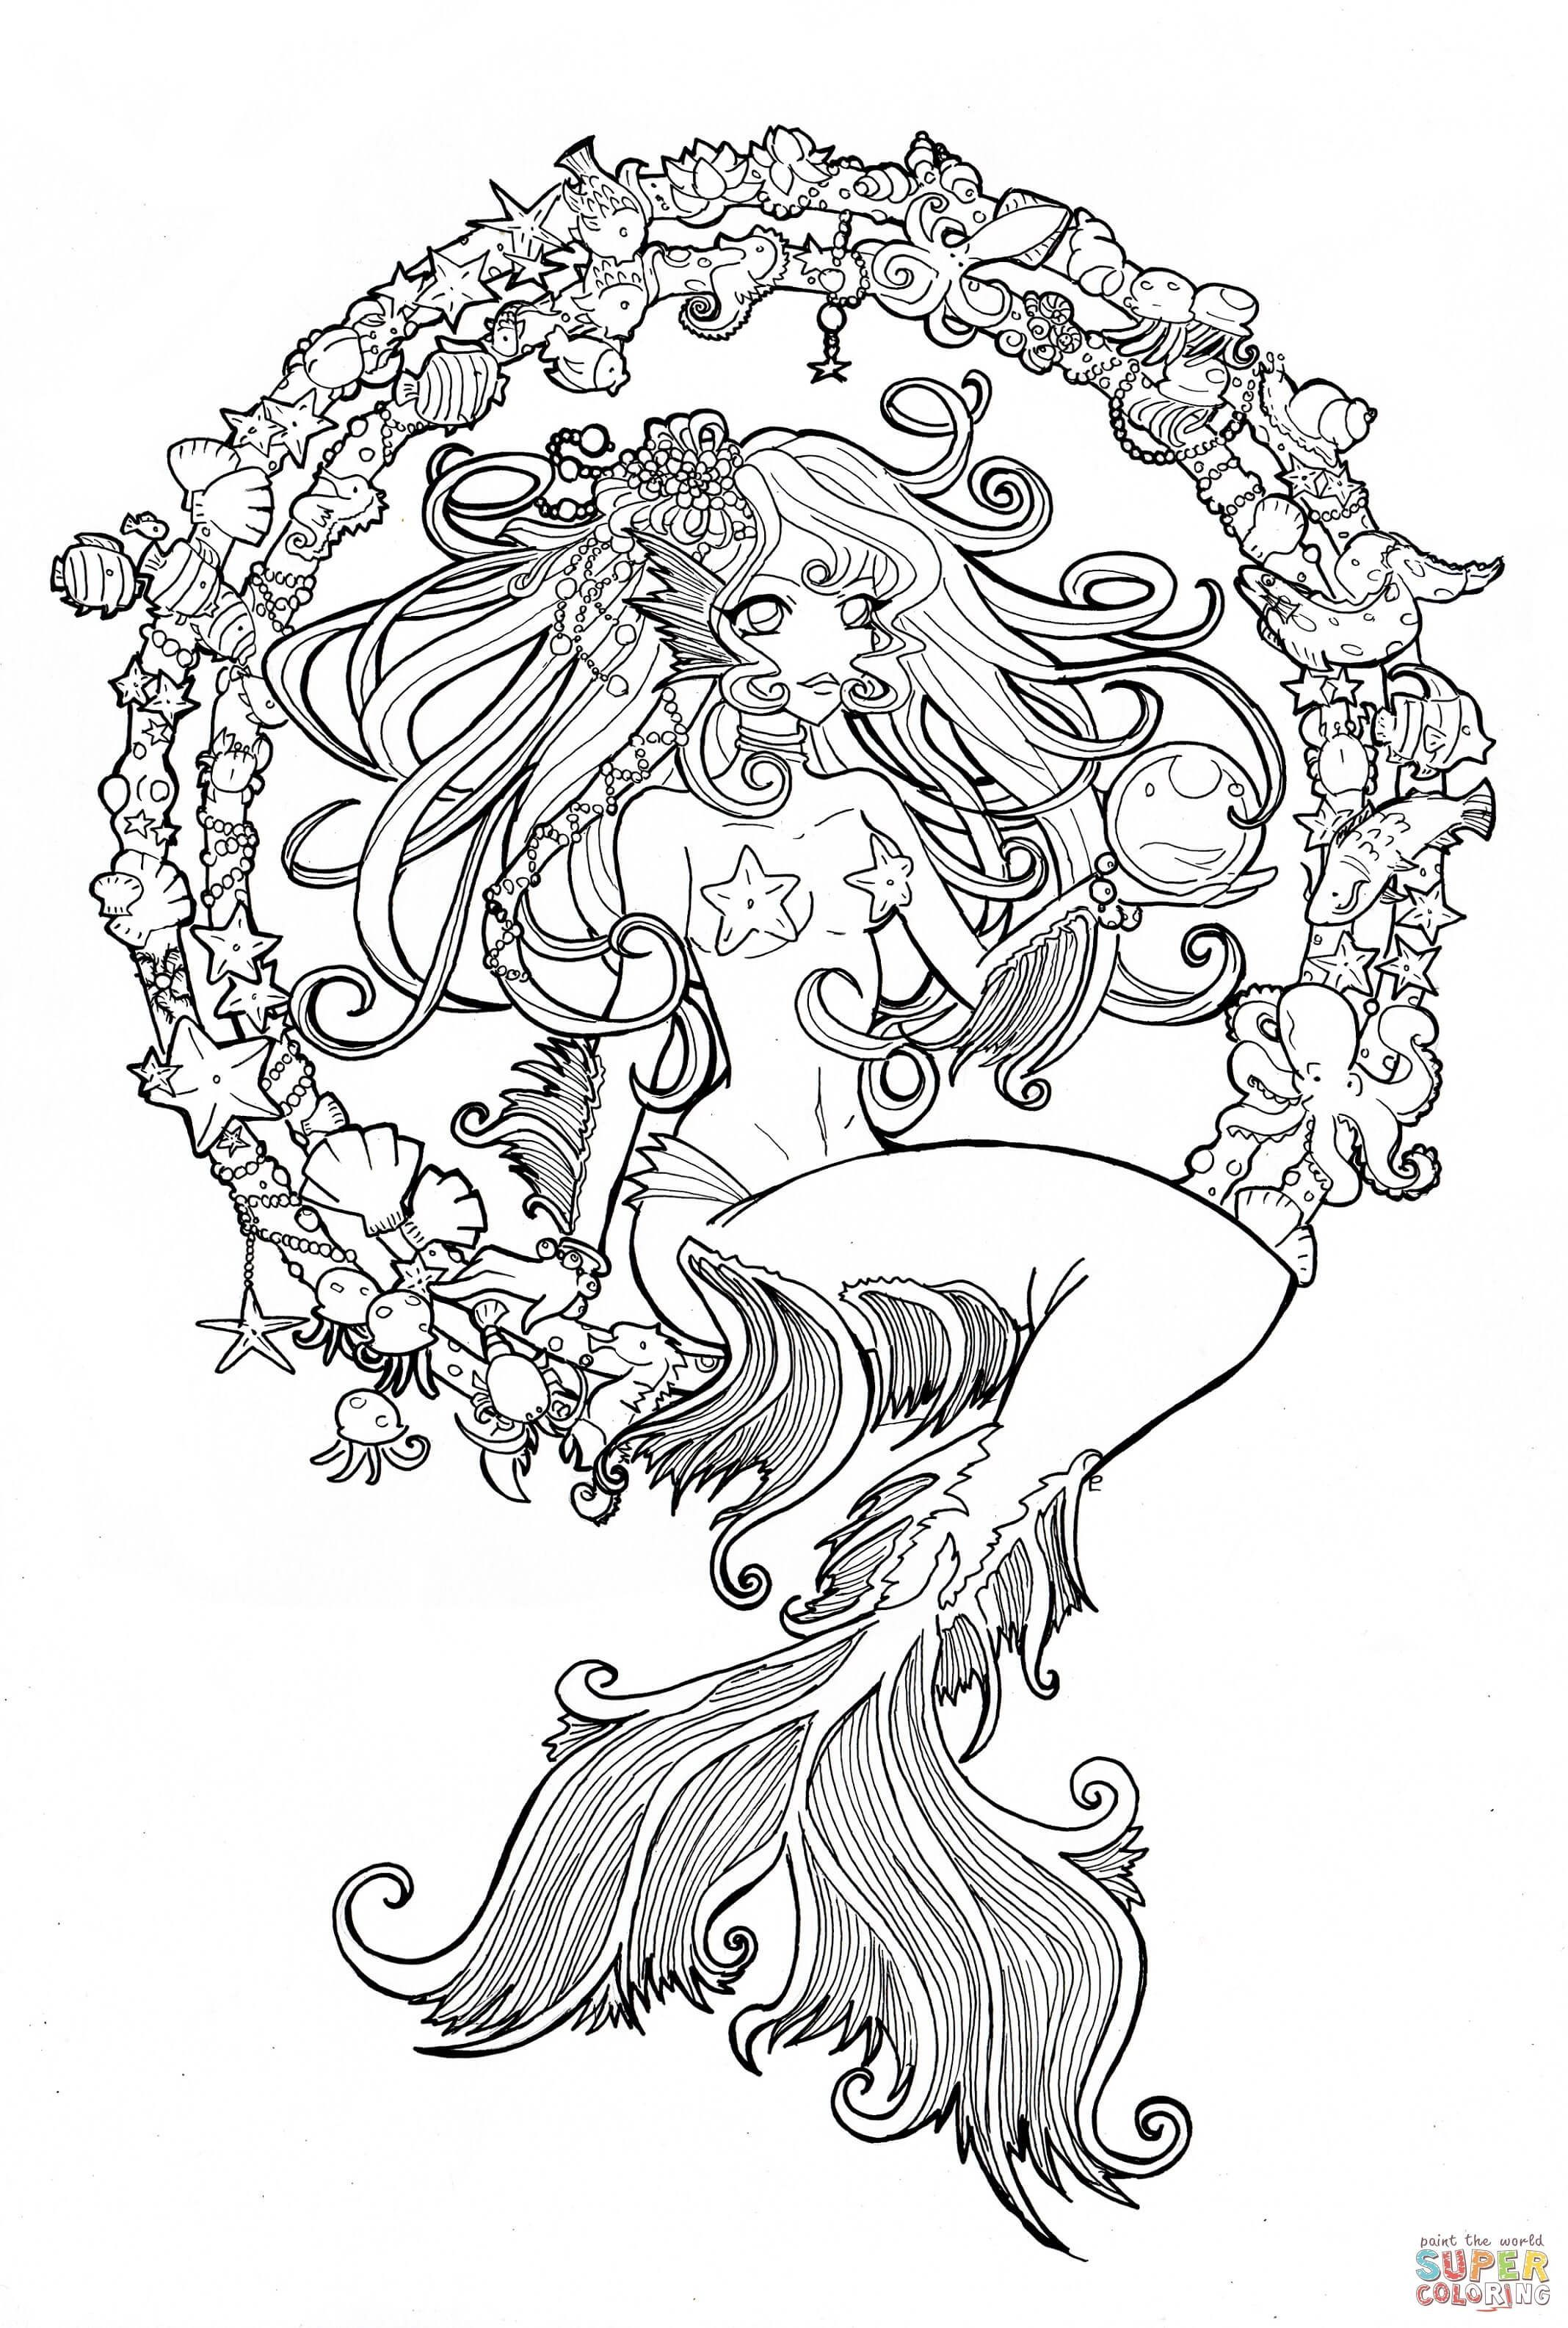 - Cordelia Jewel Of The Sea Coloring Page From Anime Girls Category